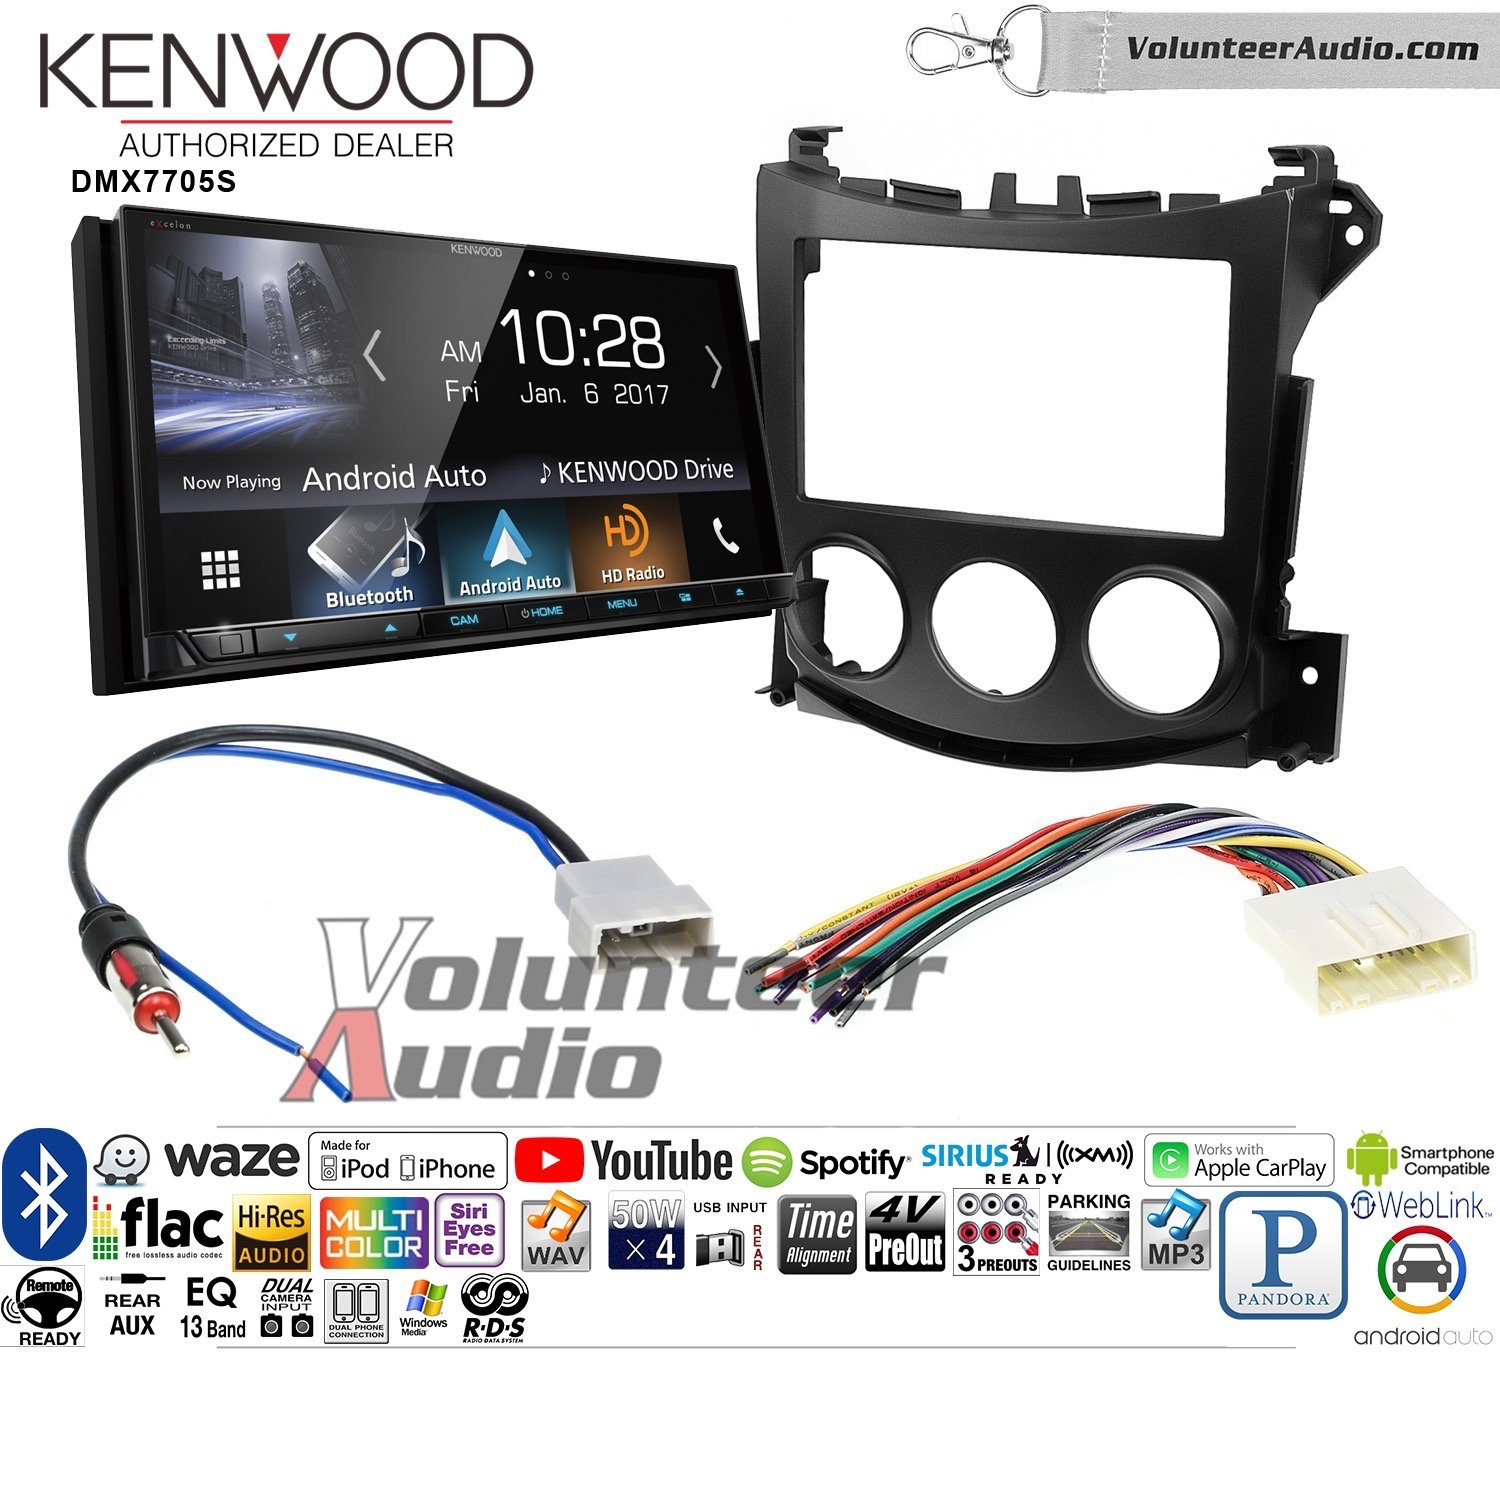 Volunteer Audio Kenwood DMX7705S Double Din Radio Install Kit with Apple CarPlay Android Auto Bluetooth Fits 2009-2016 Nissan 370Z